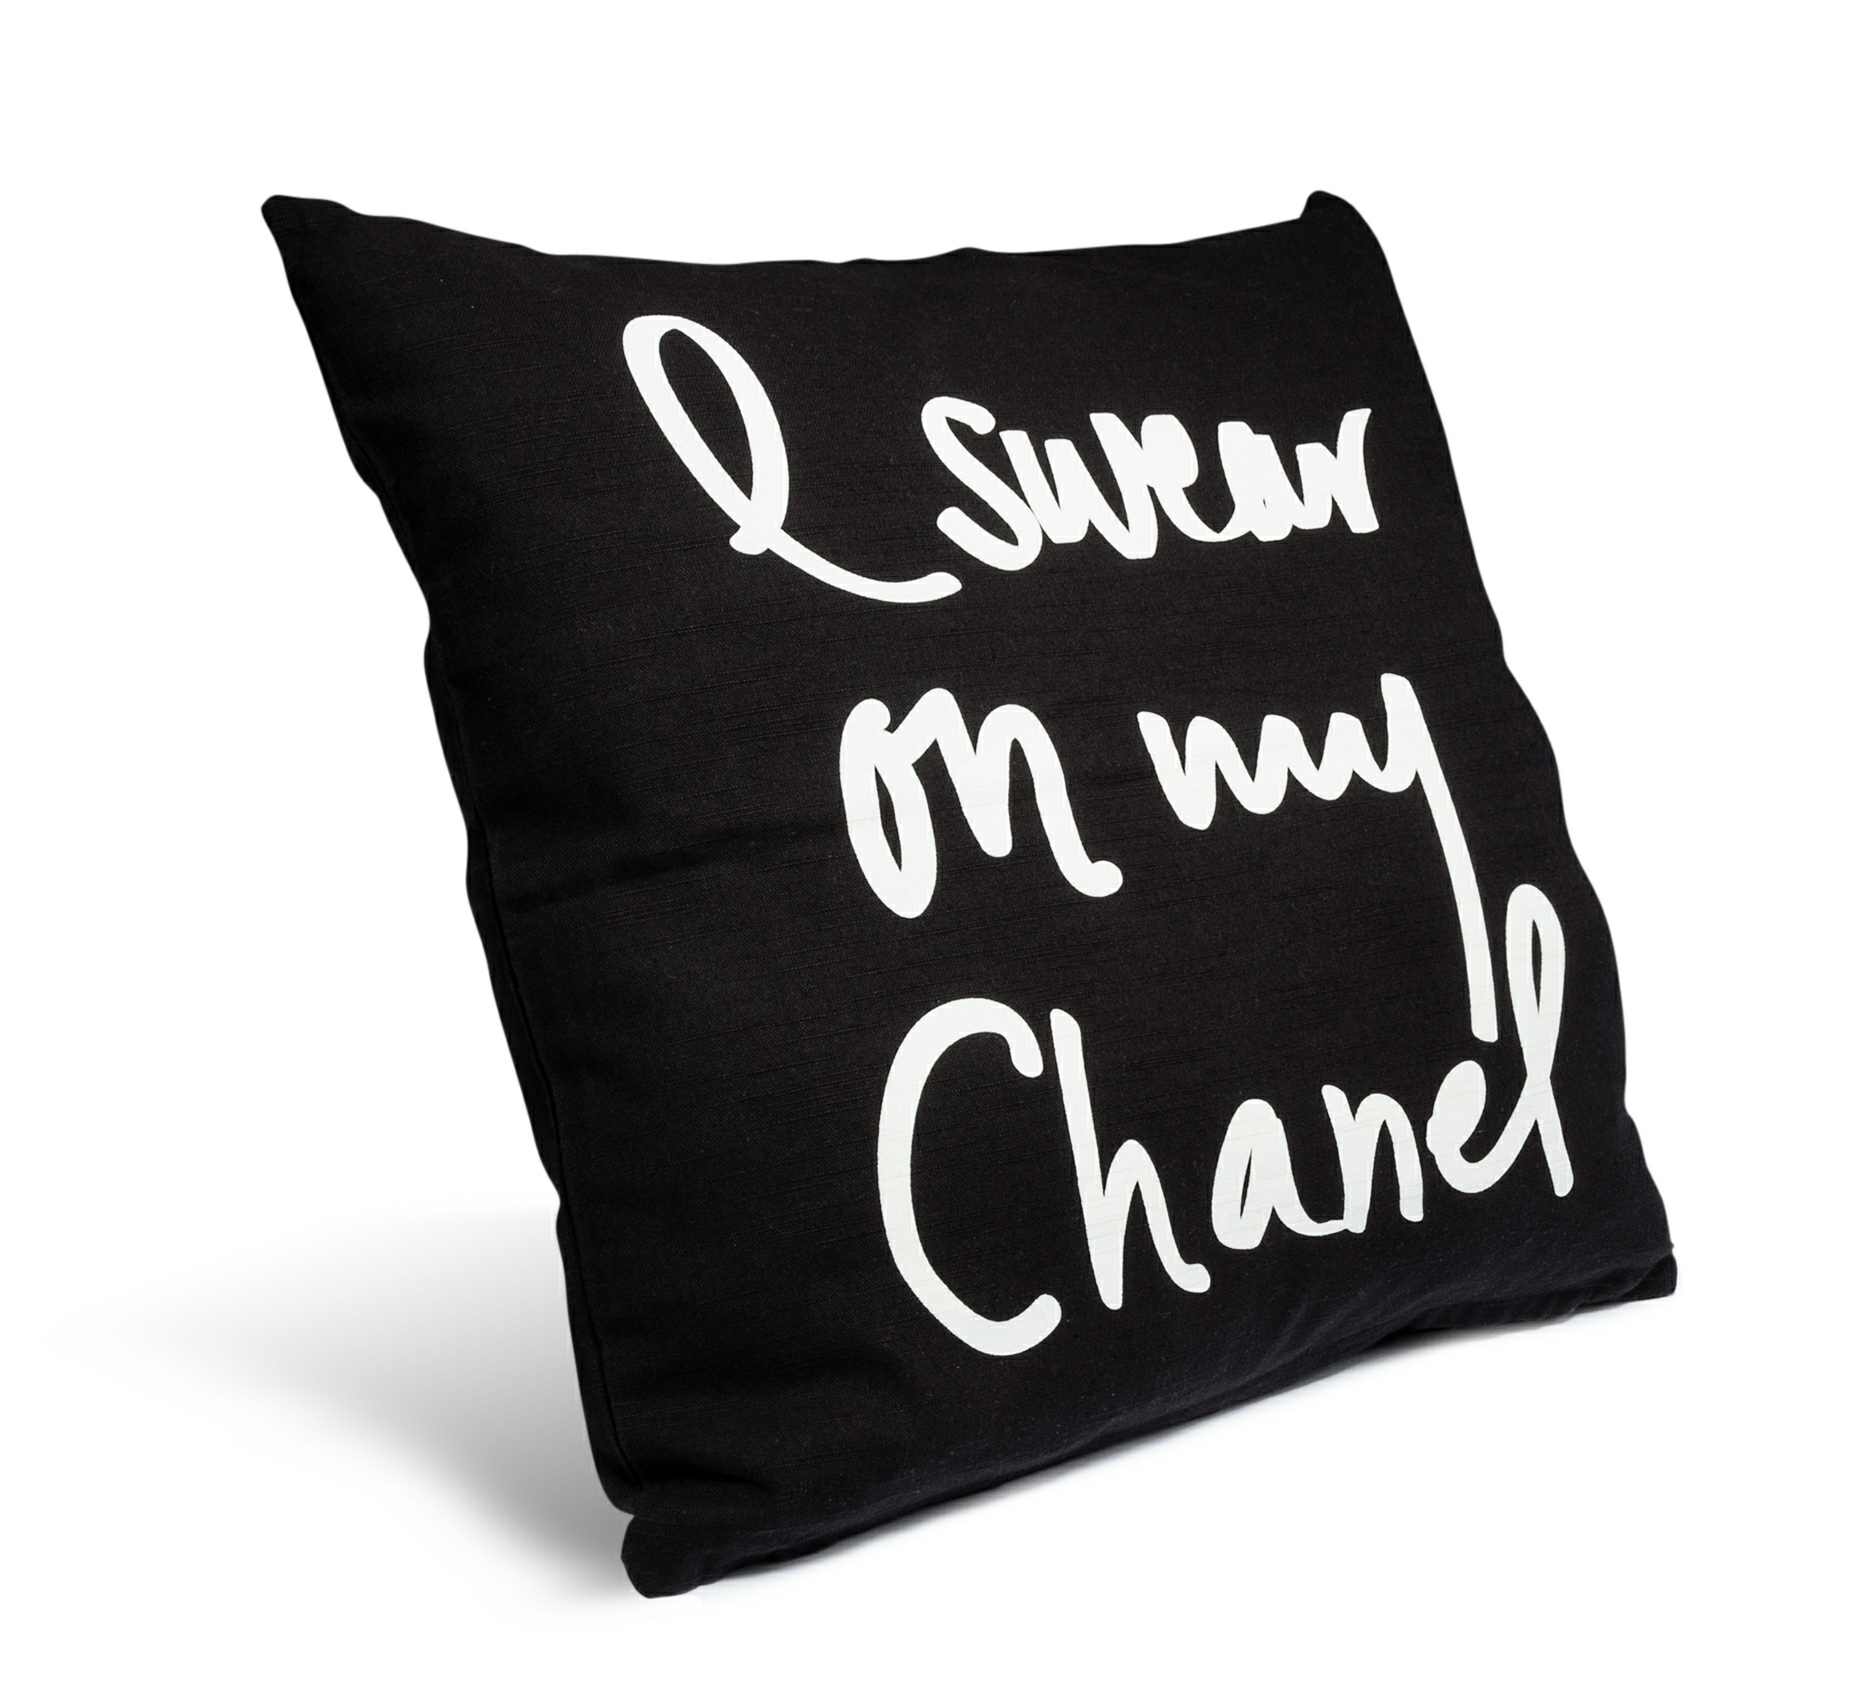 chanel pillow. click to enlarge image chanel pillow